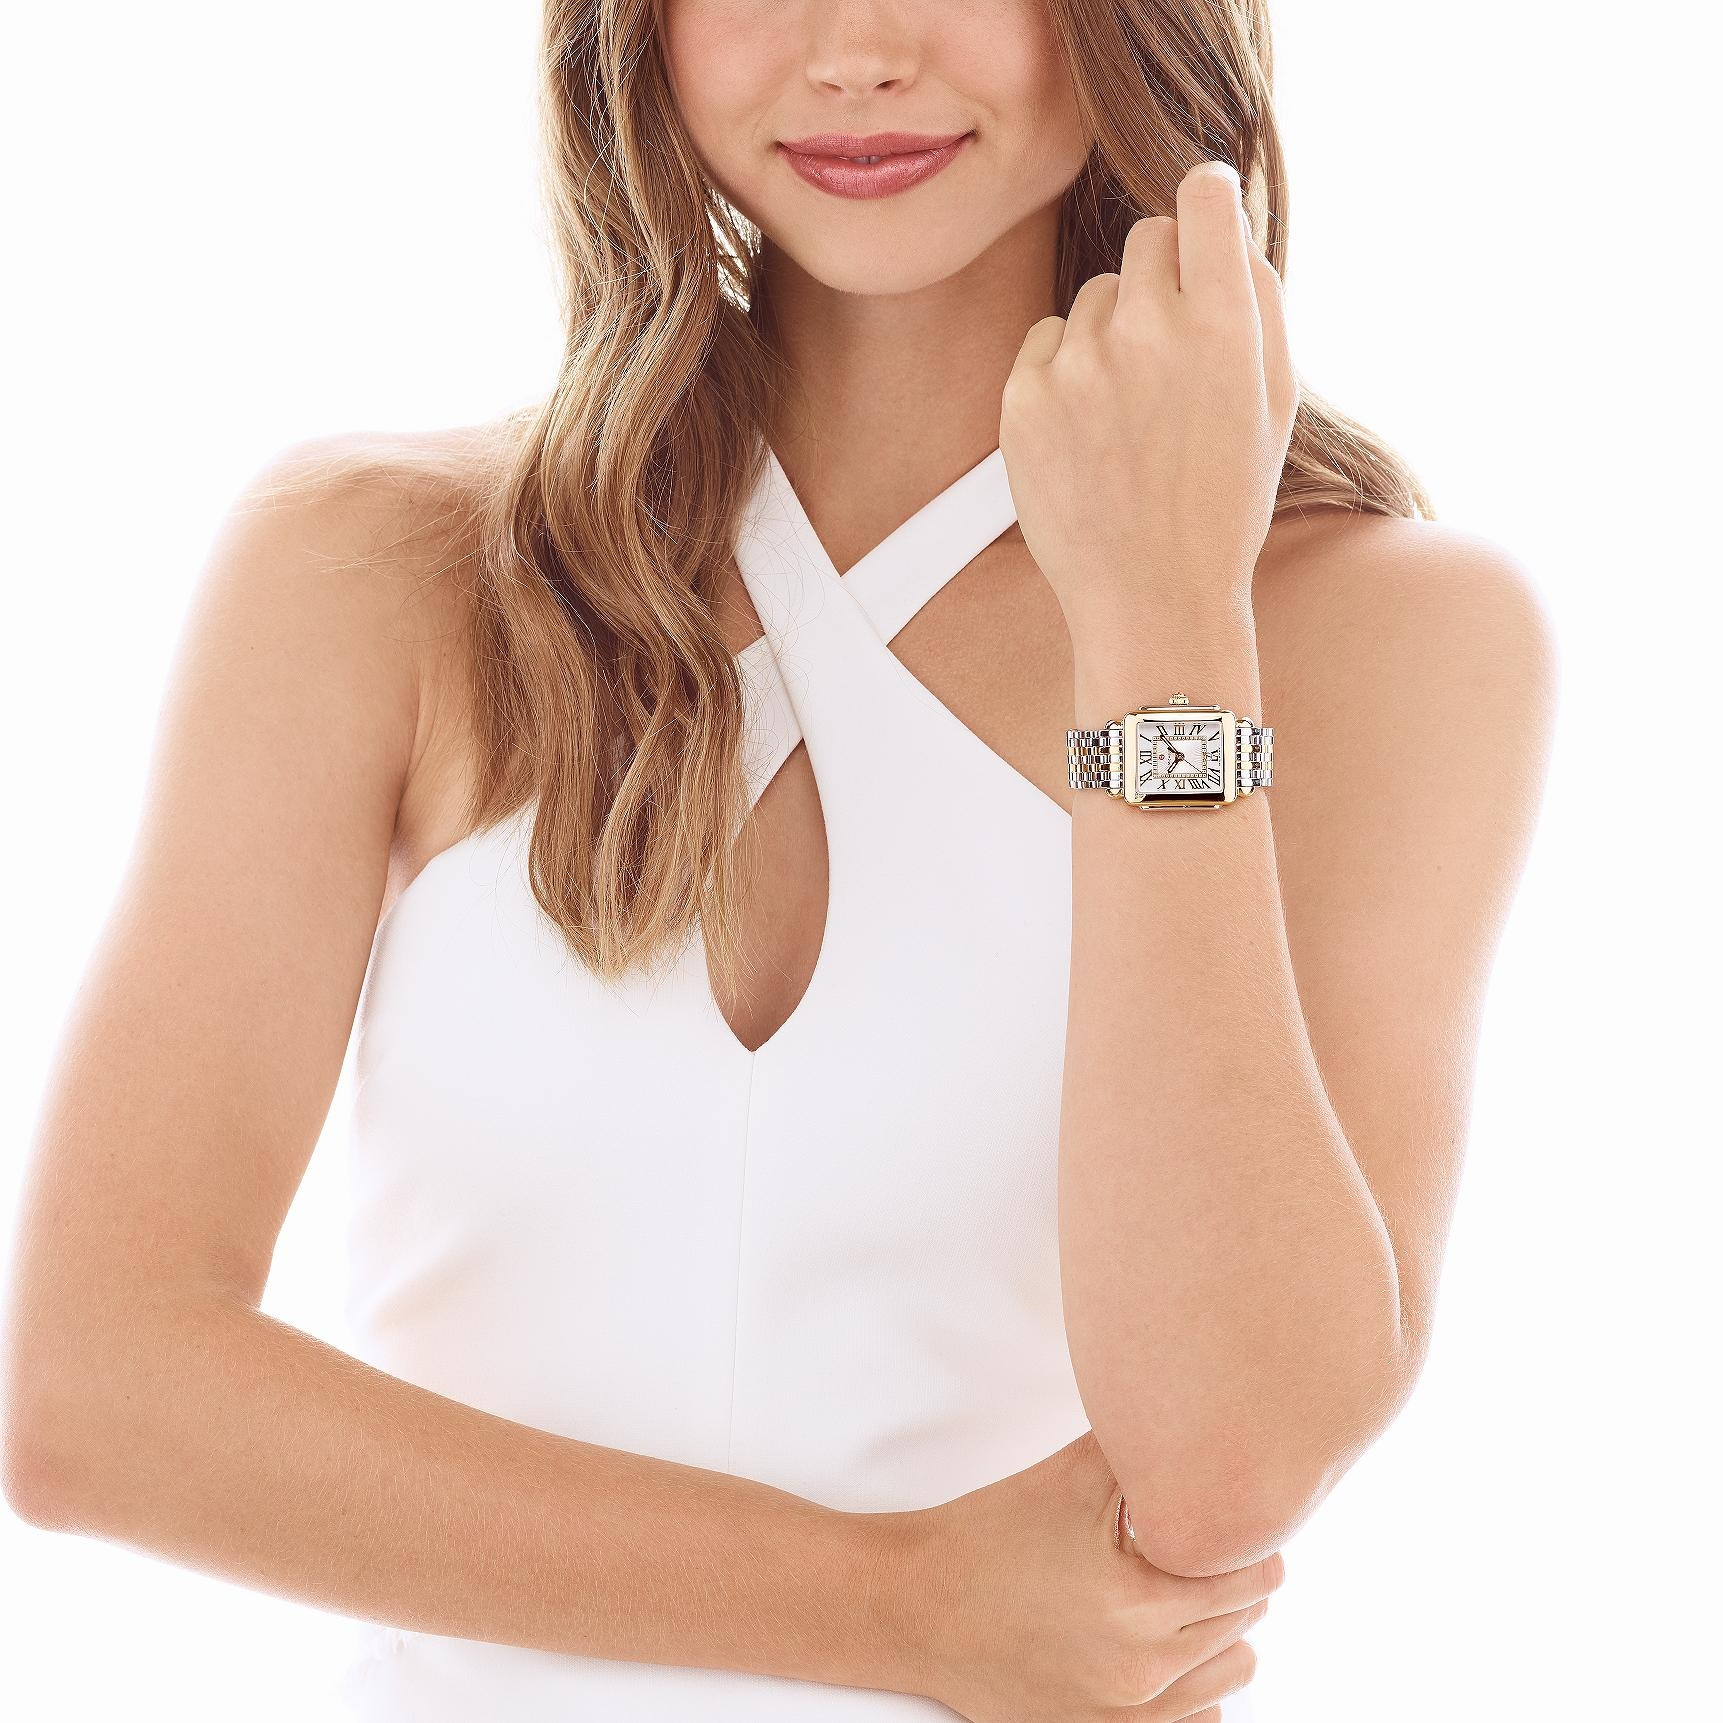 Michele Deco Madison Mid Diamond Dial Watch in Silver and Gold on model